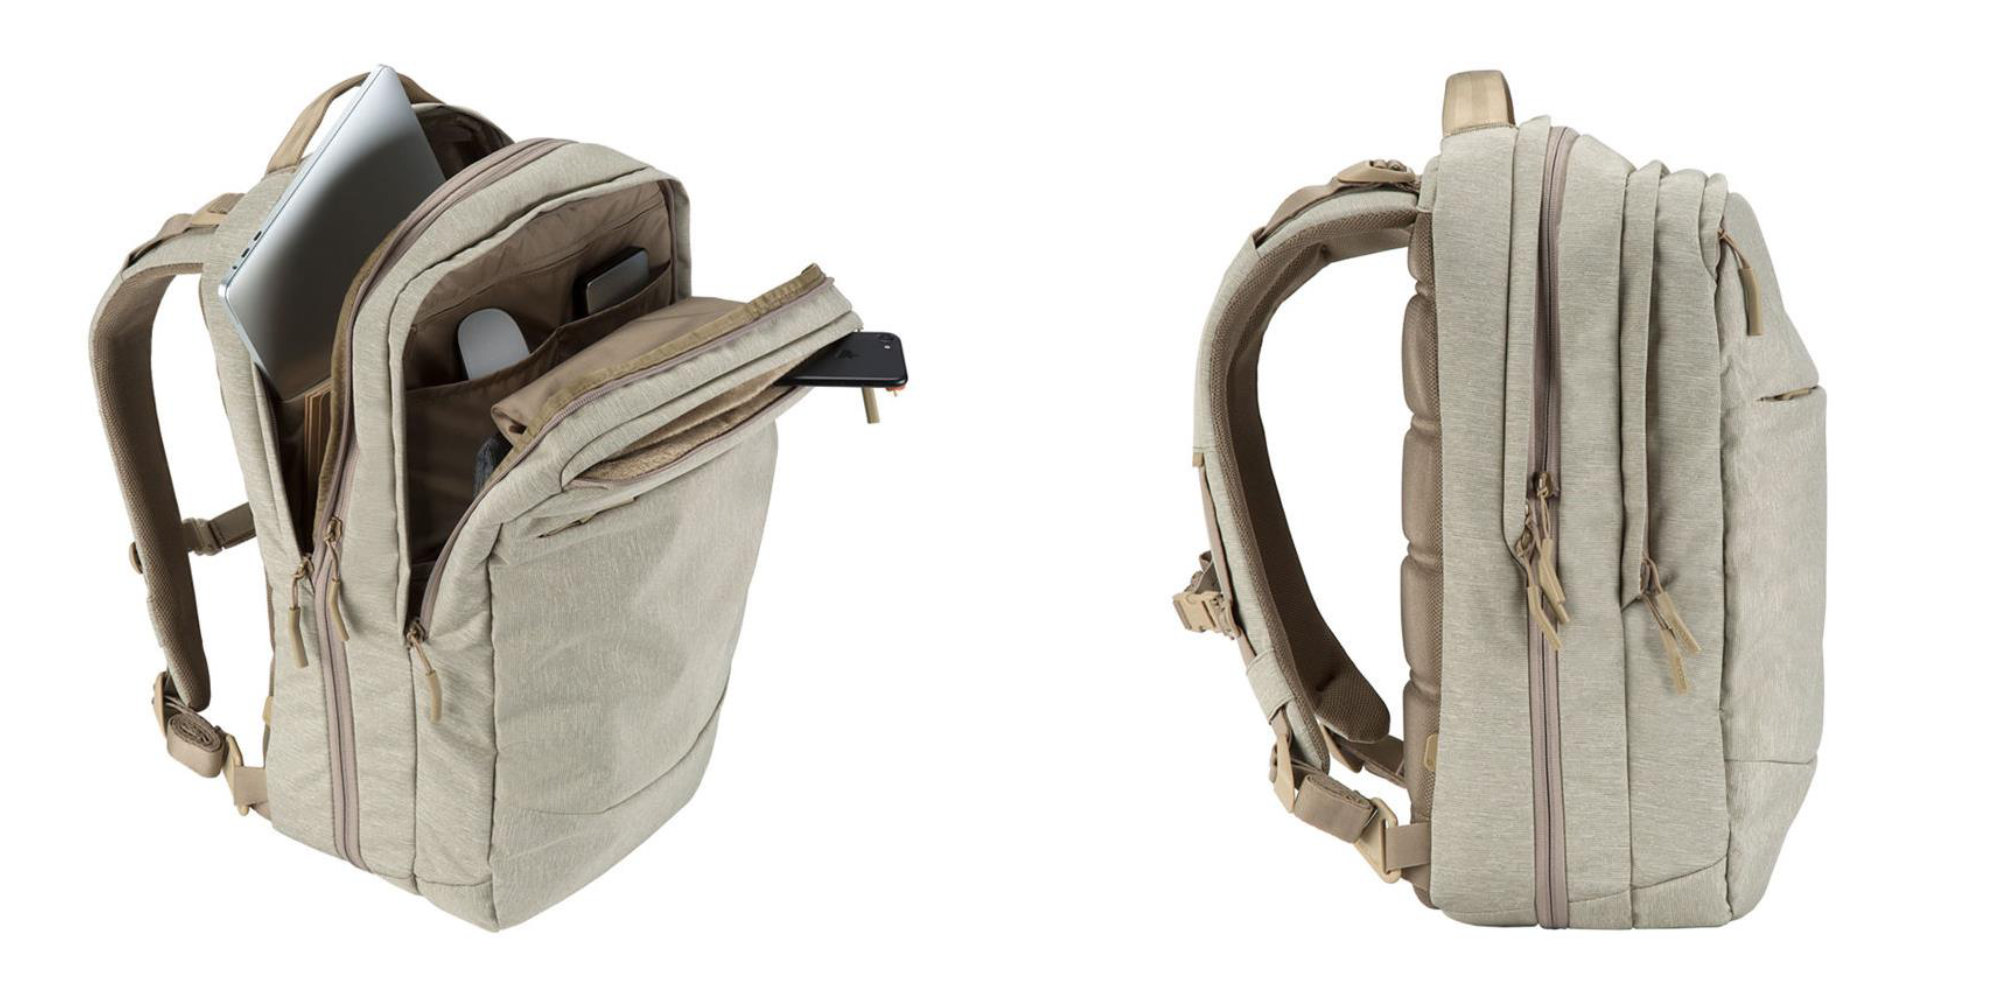 Keep your MacBook and iPad safe w/ an Incase City Commuter Backpack: $58 (over 40% off)